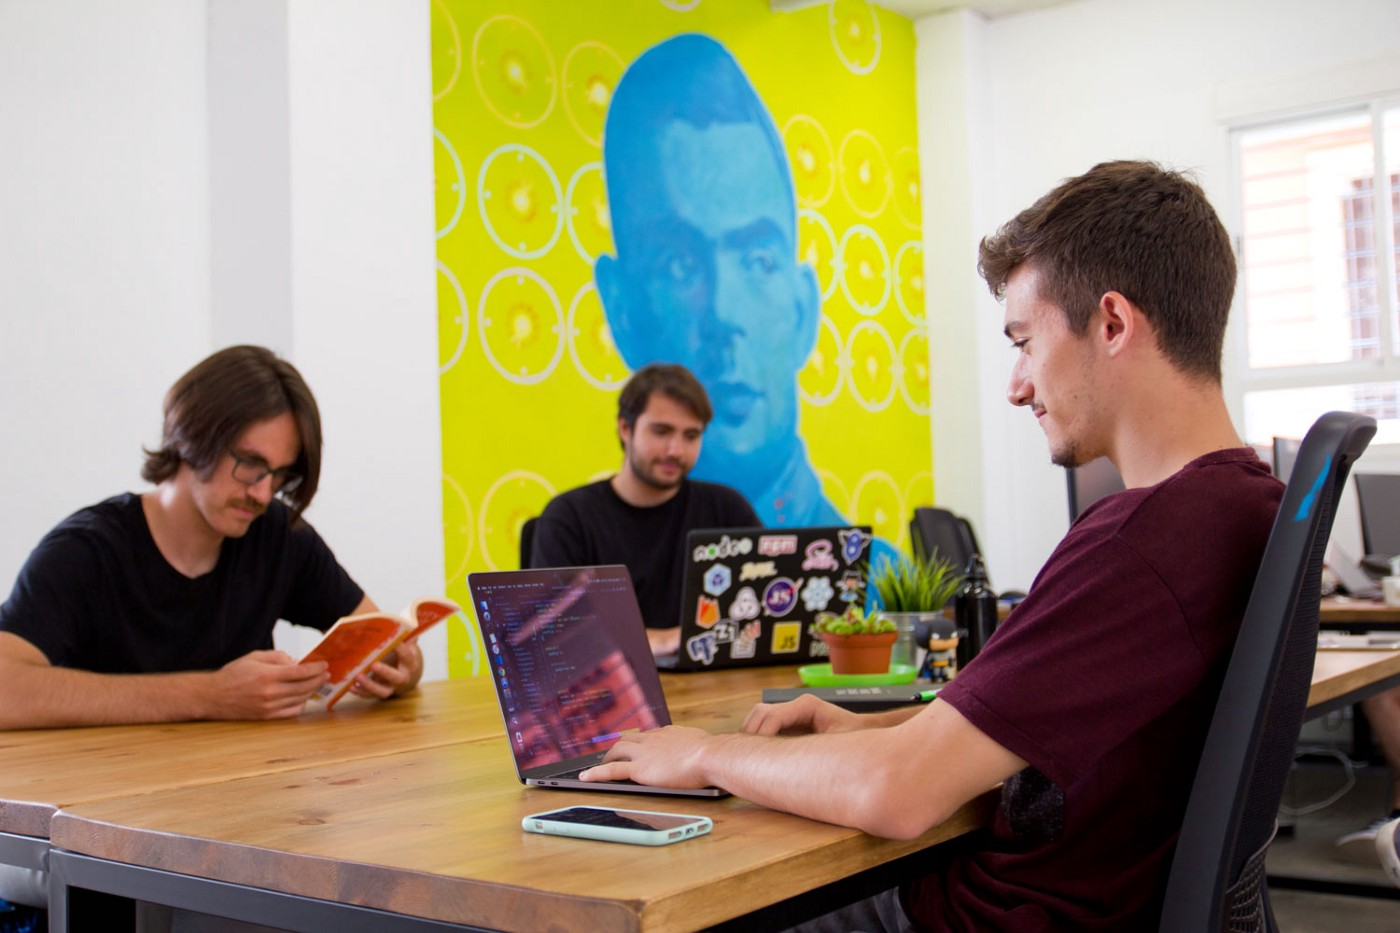 The importance of choosing a cool company for your software internship